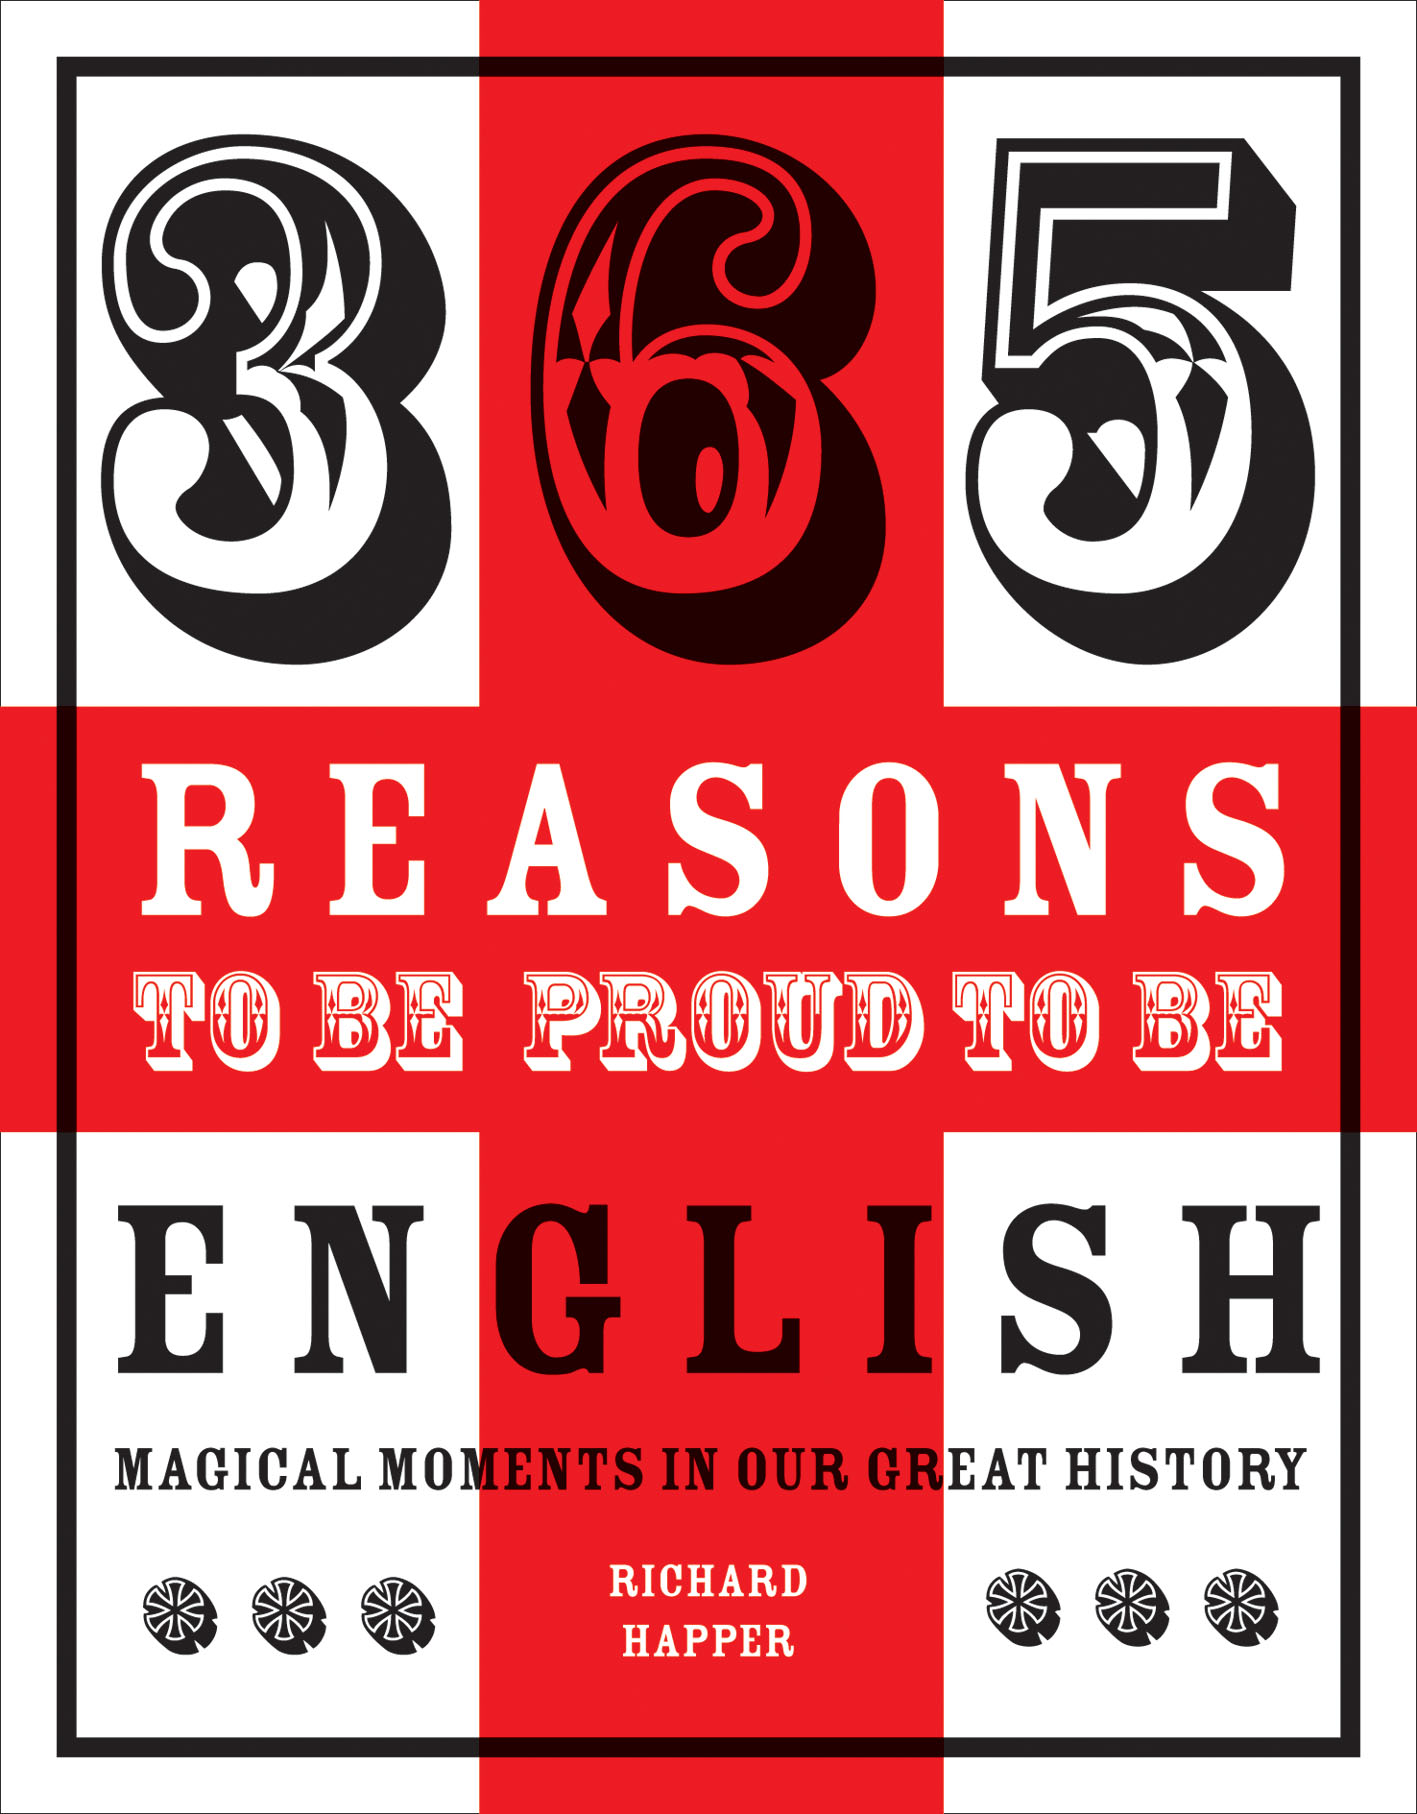 365 Reasons to be Proud to be English